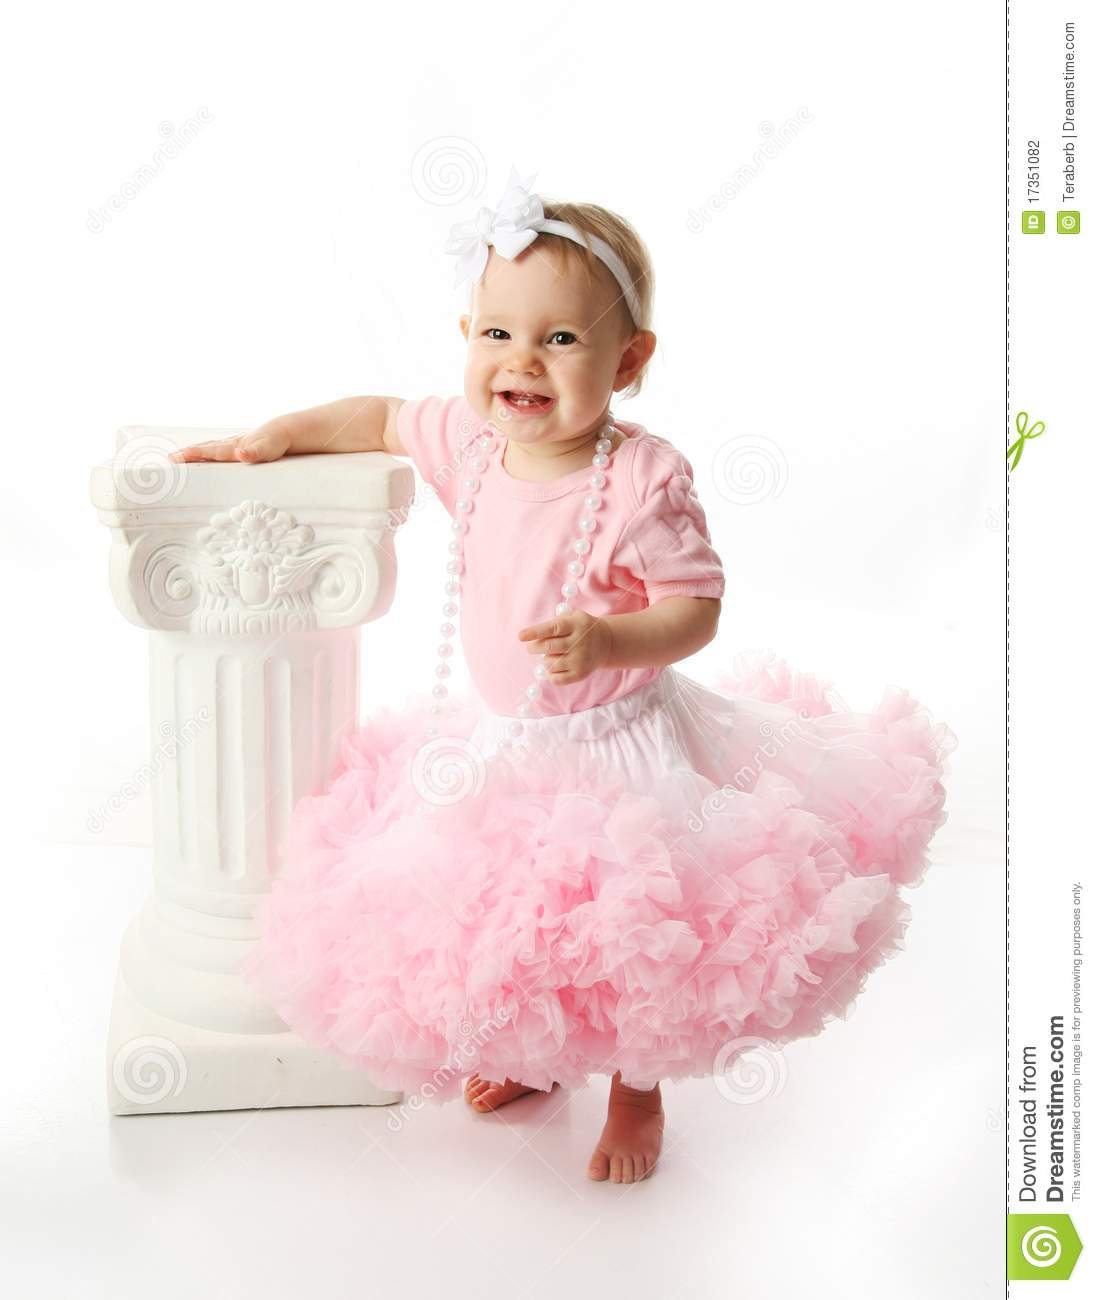 Baby Girls 1st First Birthday Dress Romper Tutu Outfits Kids Party Suit Gold One See more like this Baby Girl First 1st Birthday Outfit Tutu Skirt Dress Tutu Cake Smash Party M Brand New.